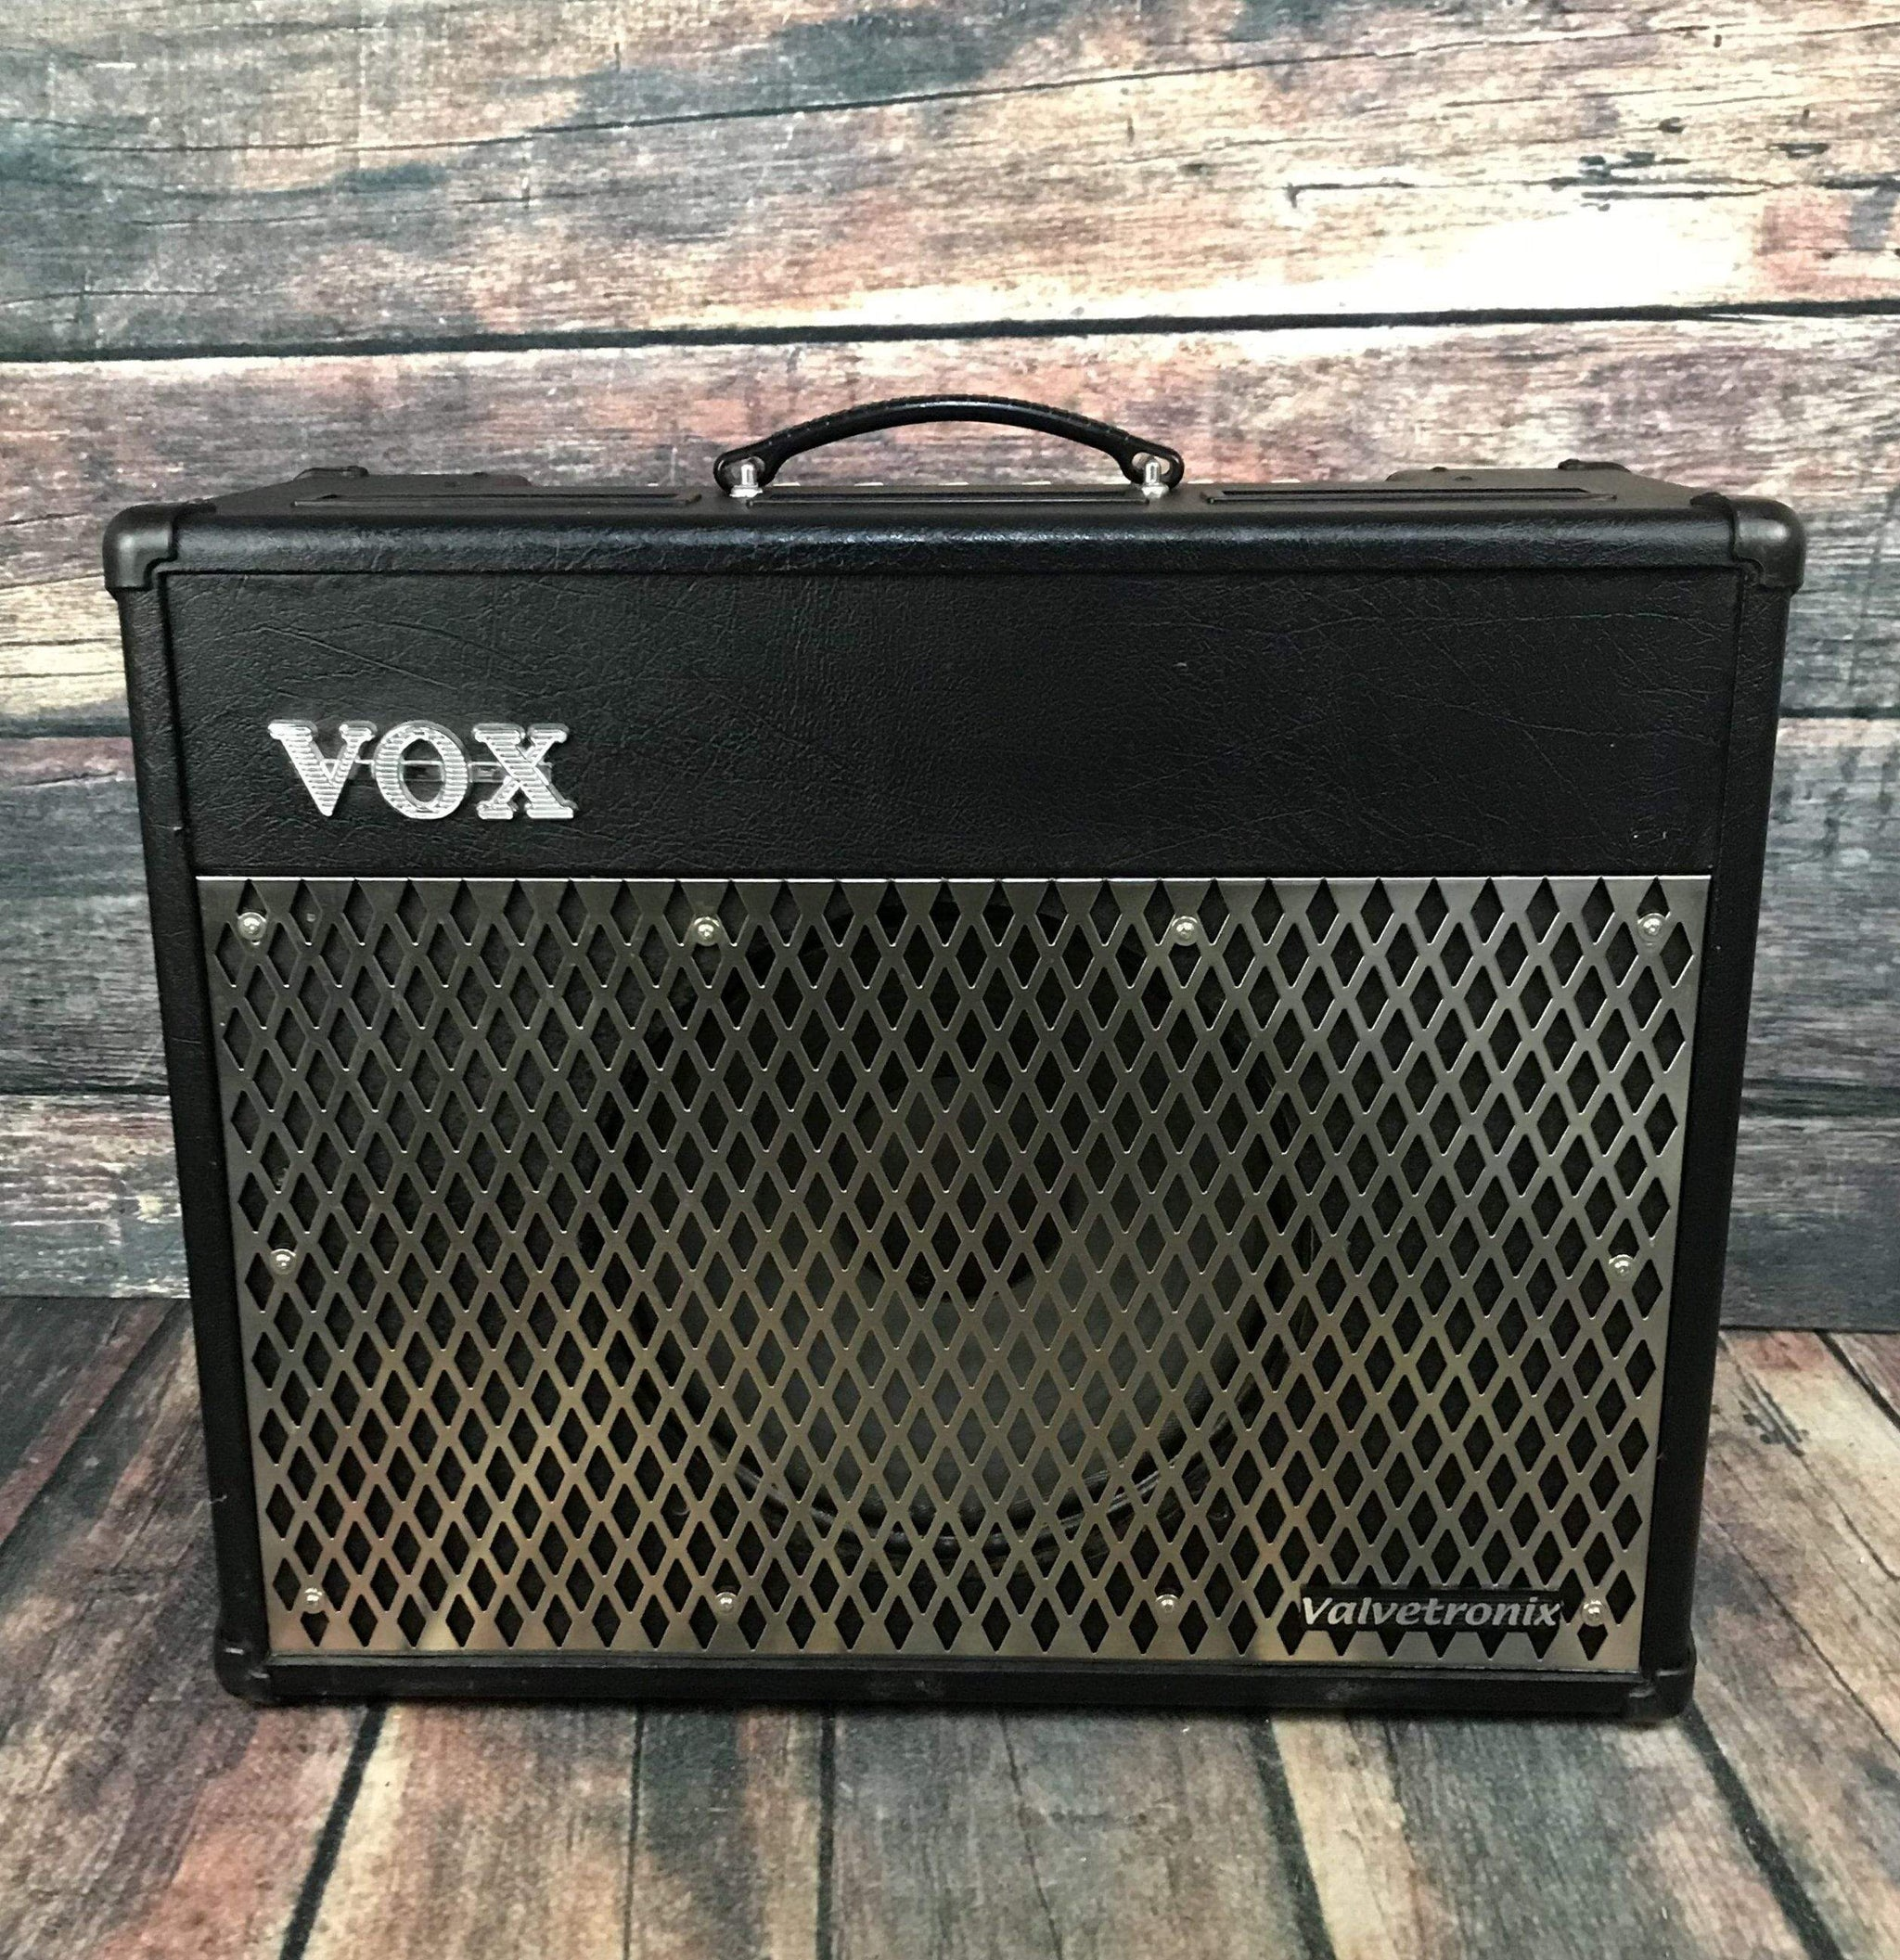 Used Vox Vt50 1x12 50 Watt Guitar Modeling Amp Adirondack Watts Audio Amplifier